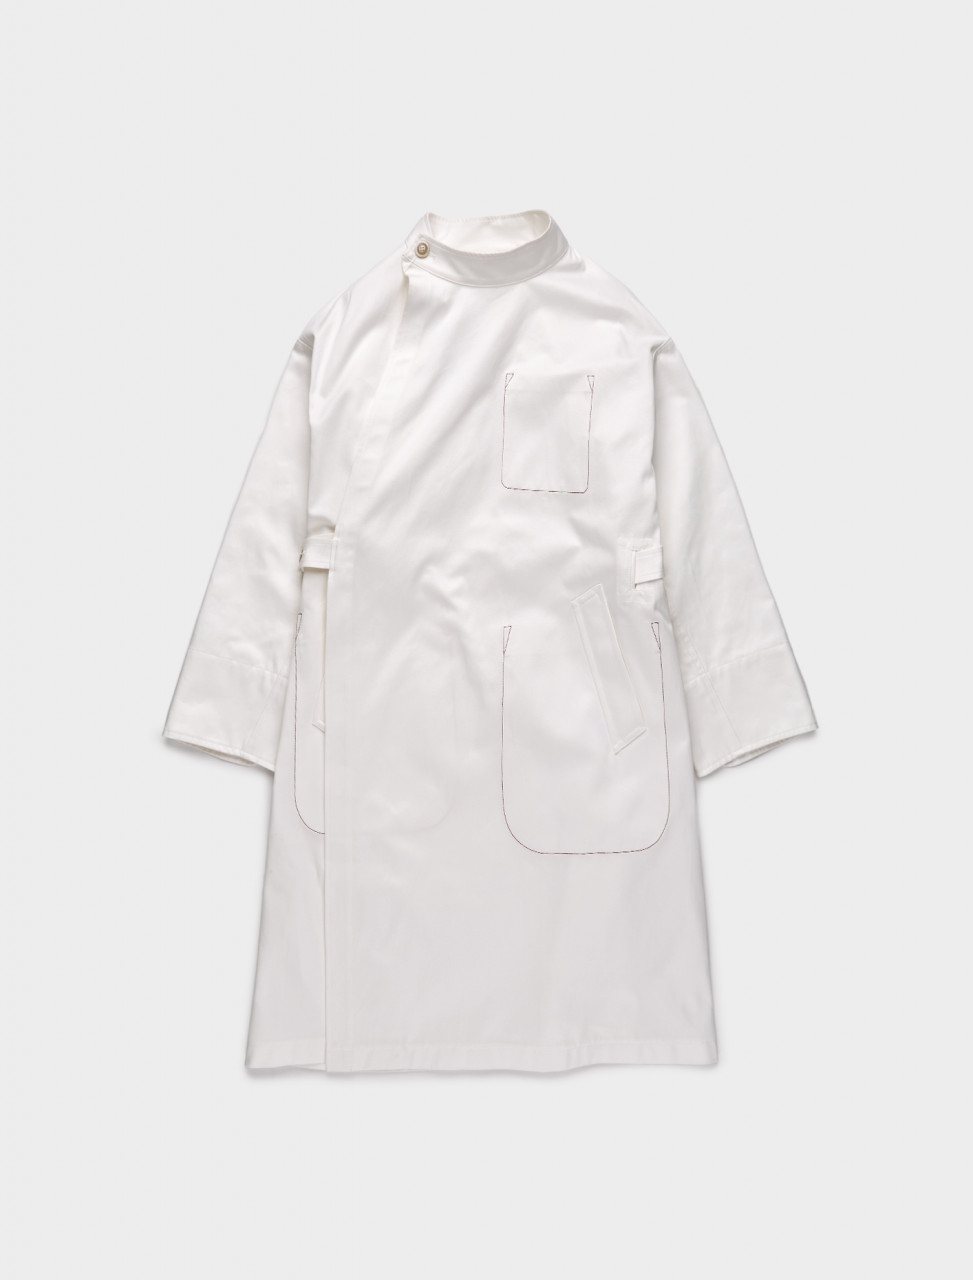 256-S30AH0140-S53228-101 MAISON MARGIELA COTTON LAB COAT OFF WHITE